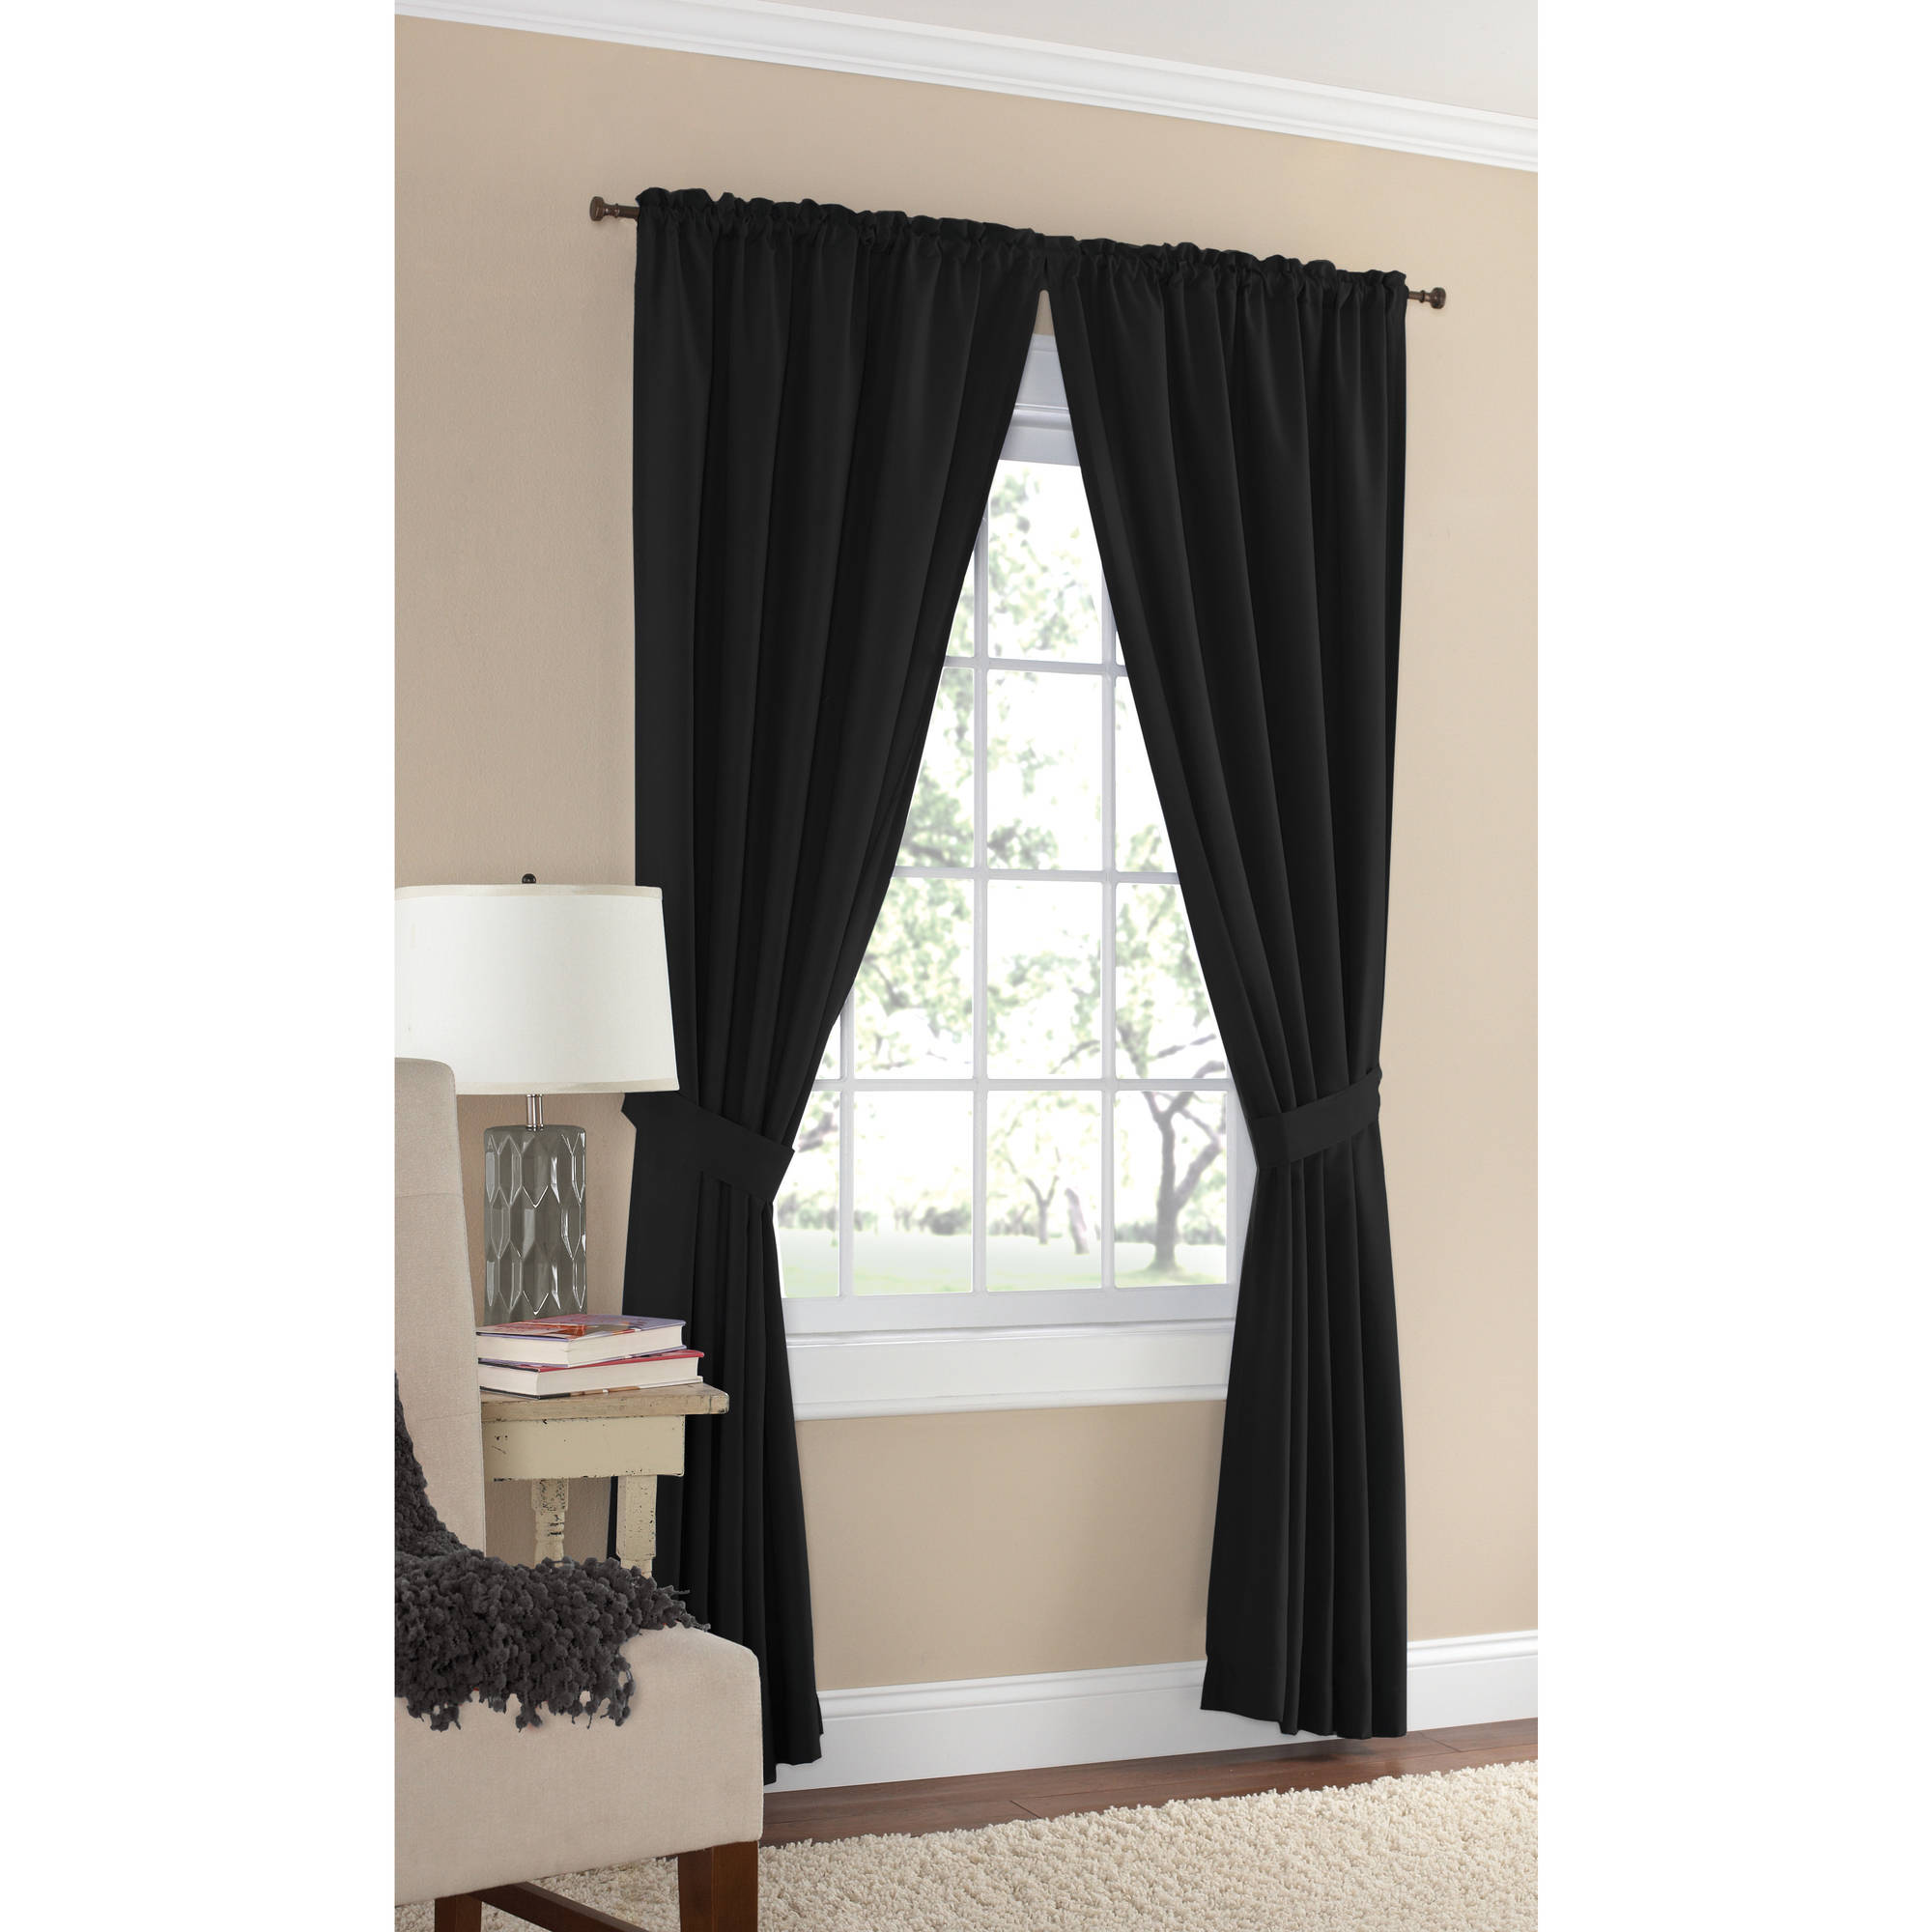 garden on protector sash fly cortinas curtains net inset from curtain room screen item mosquito window in diy home screens mesh